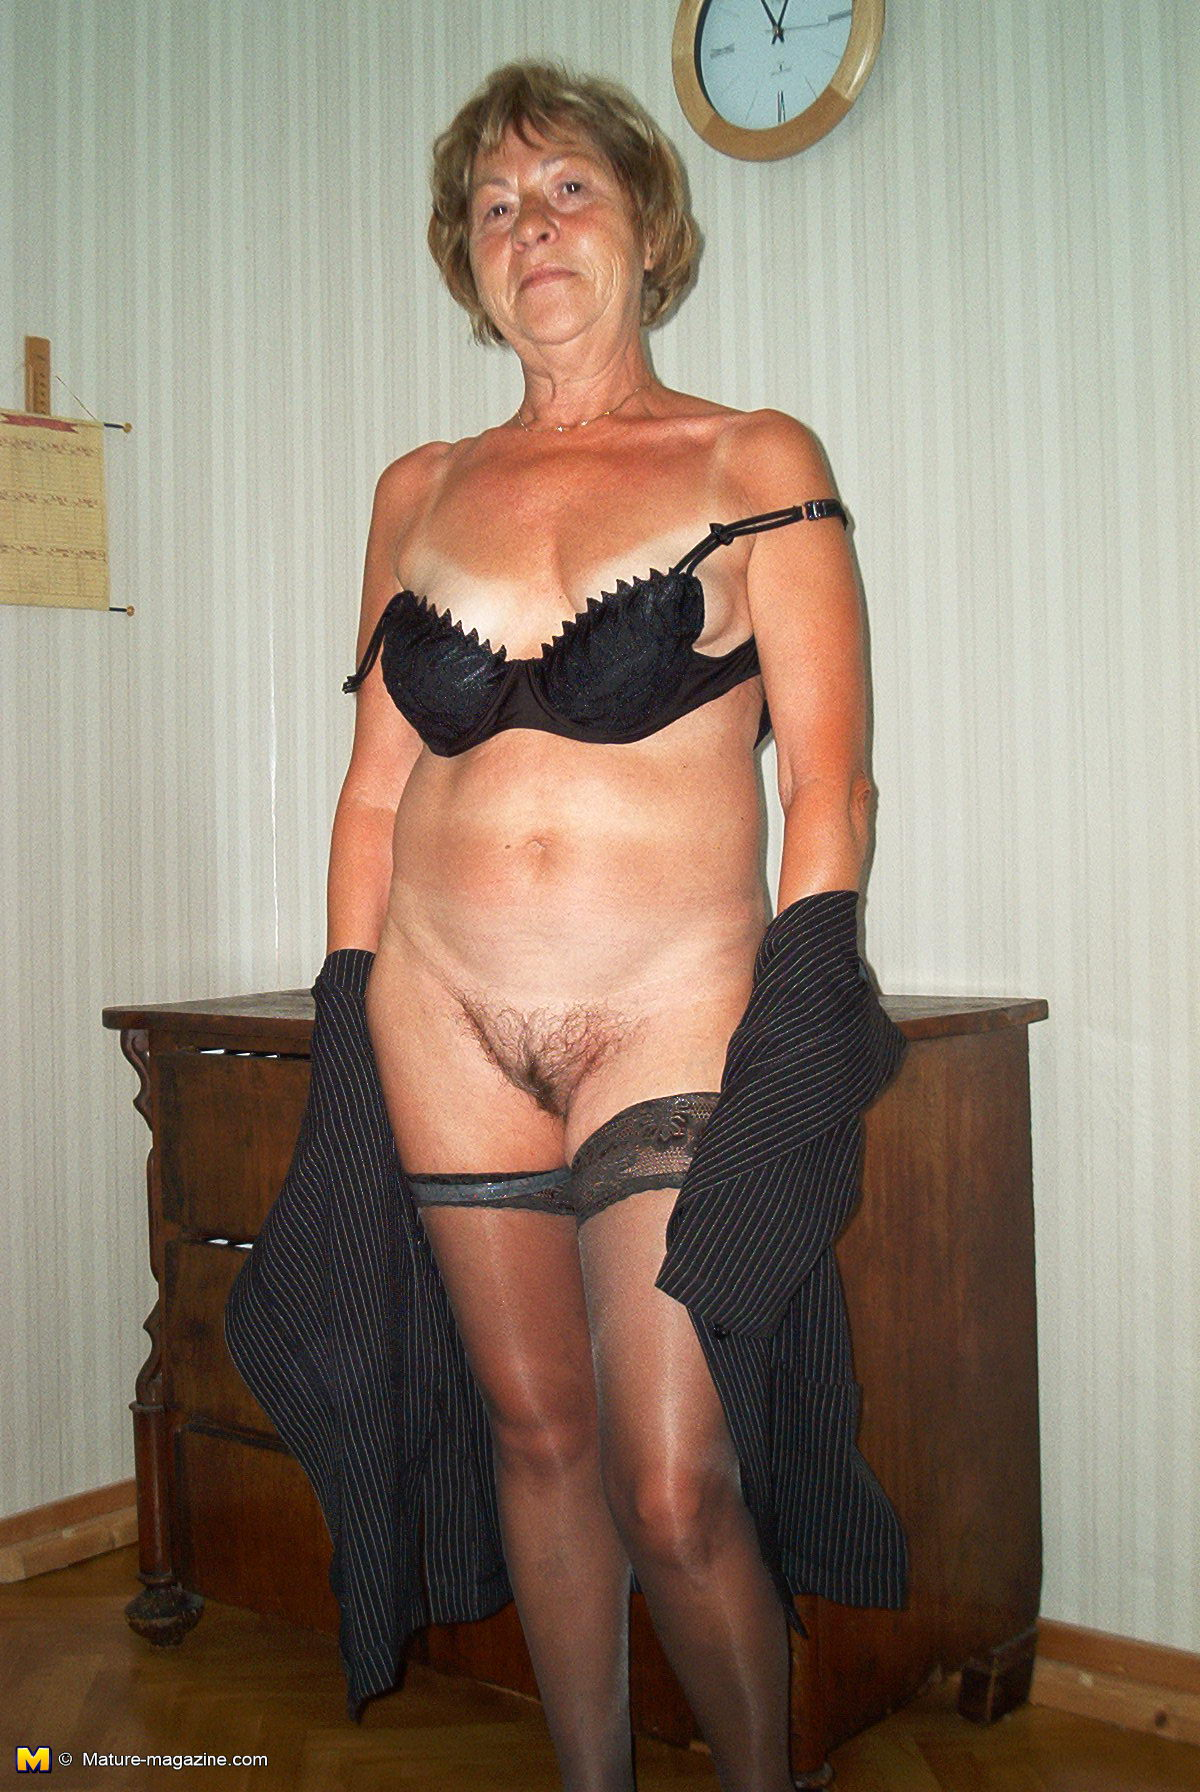 mature amateur poses naked for the camera - grannypornpics